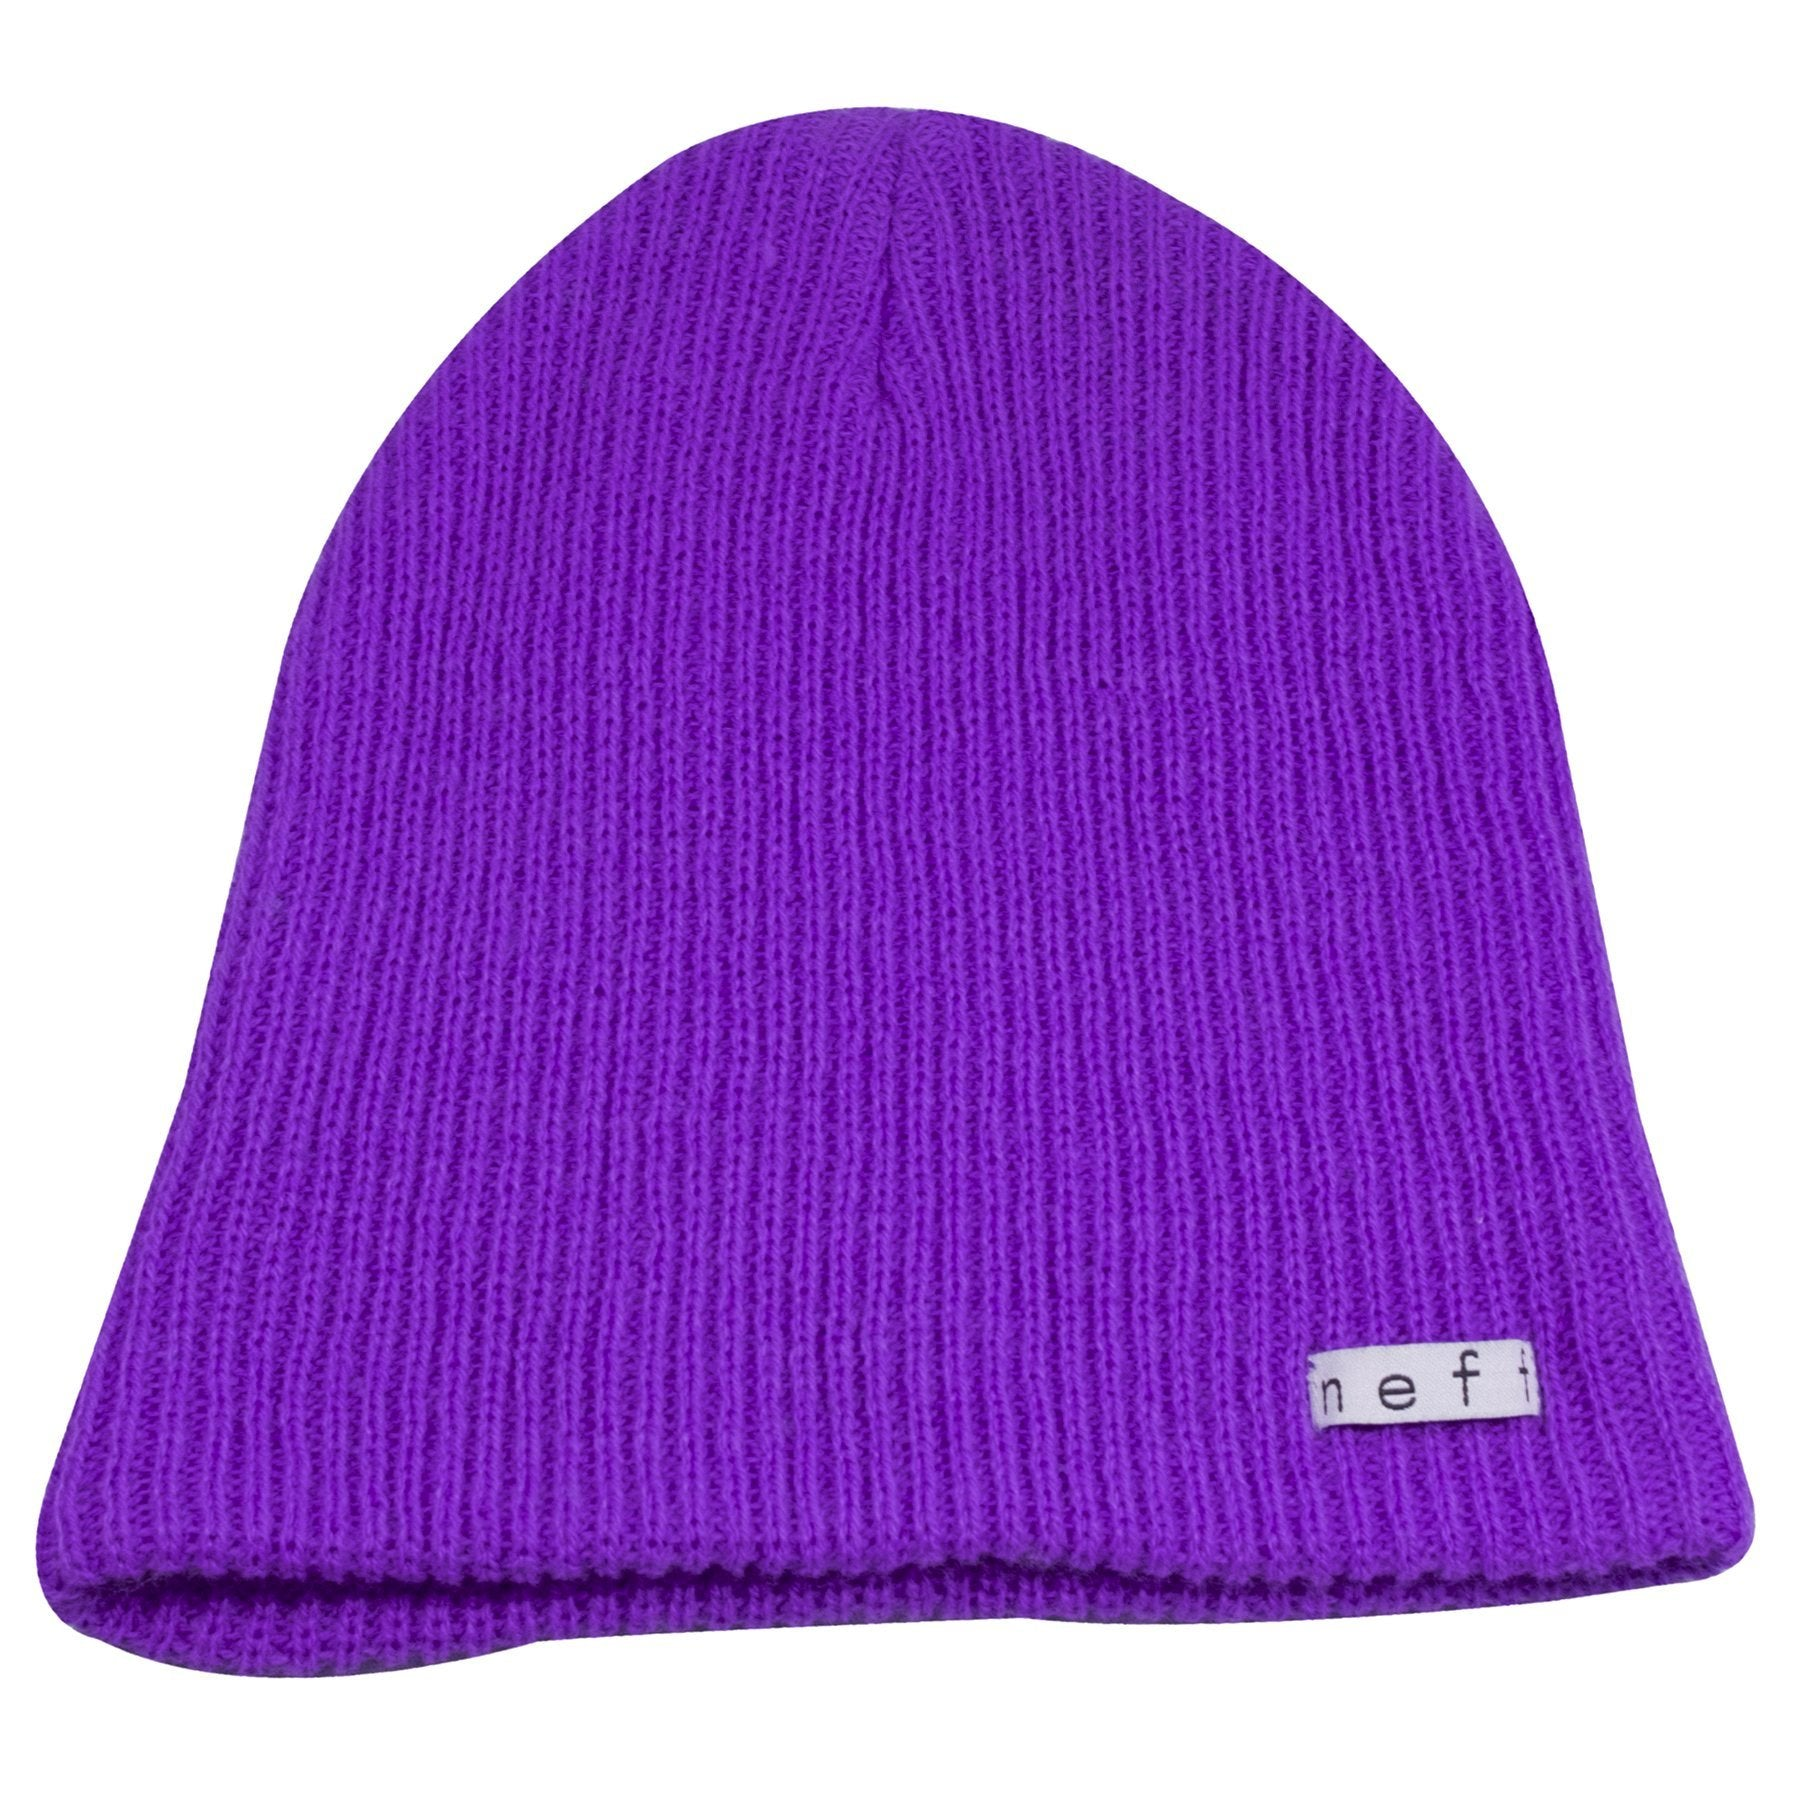 67c35f4ad02 the neff neon purple daily beanie is solid purple and has a white tag on the